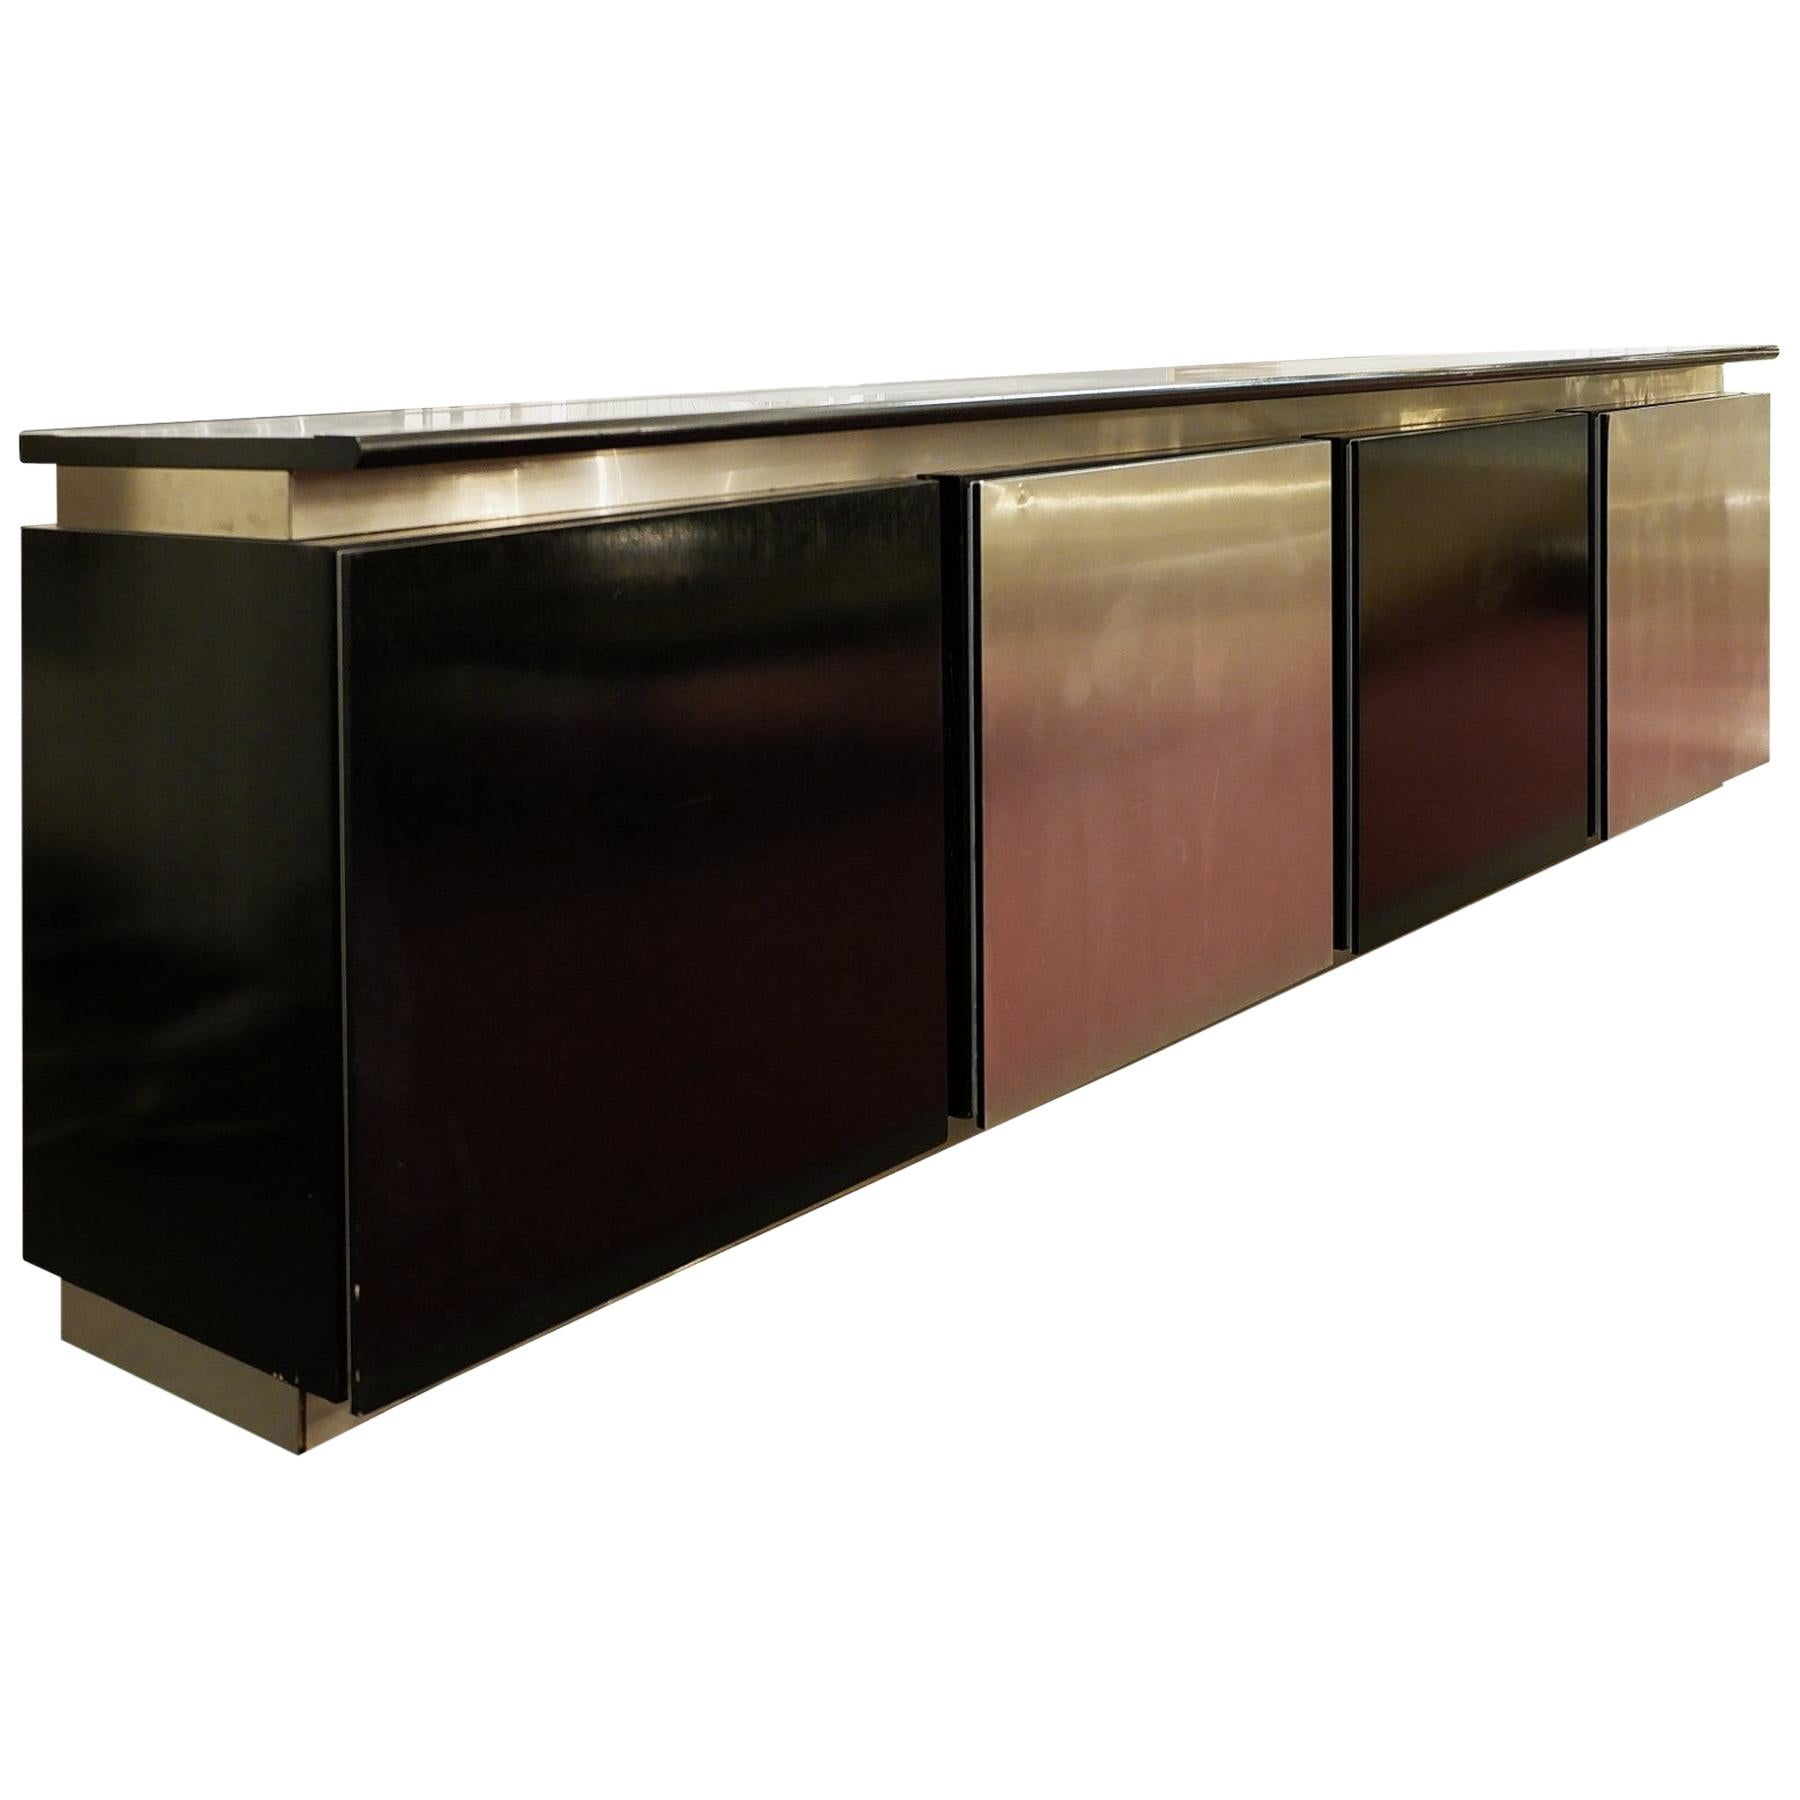 Ludovico Acerbis Sideboard in Stained Oak and Aluminum, 1960s